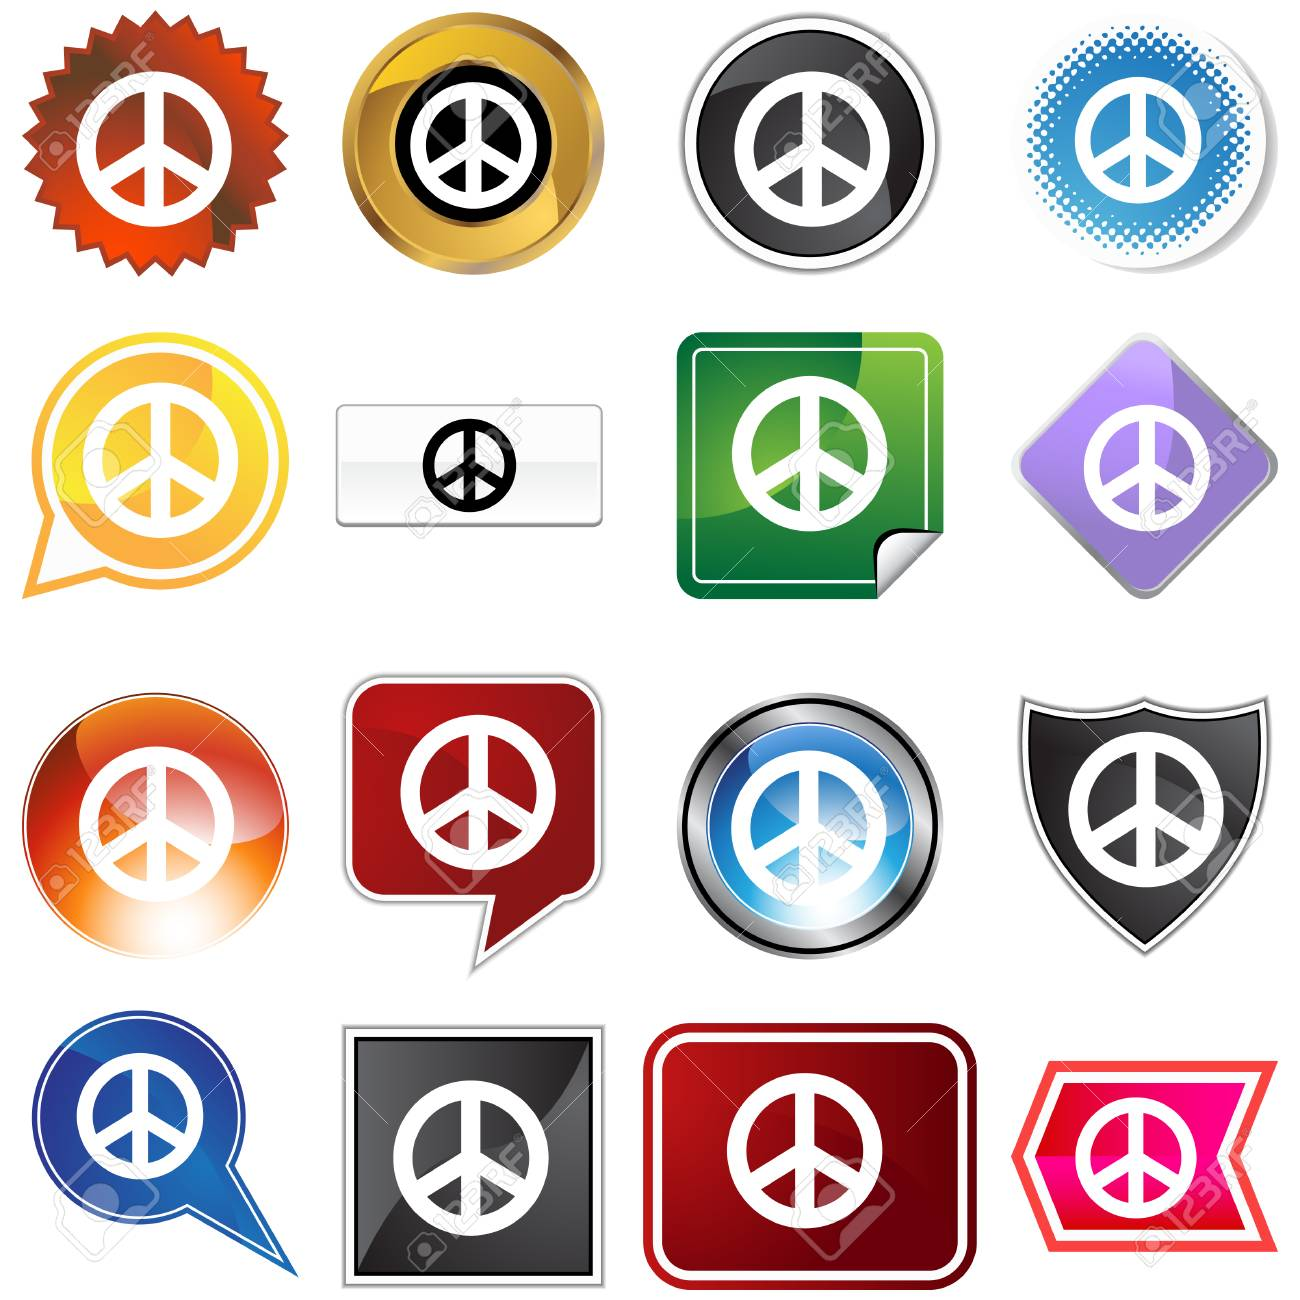 peace icon isolated on a white background. Stock Vector - 5829641